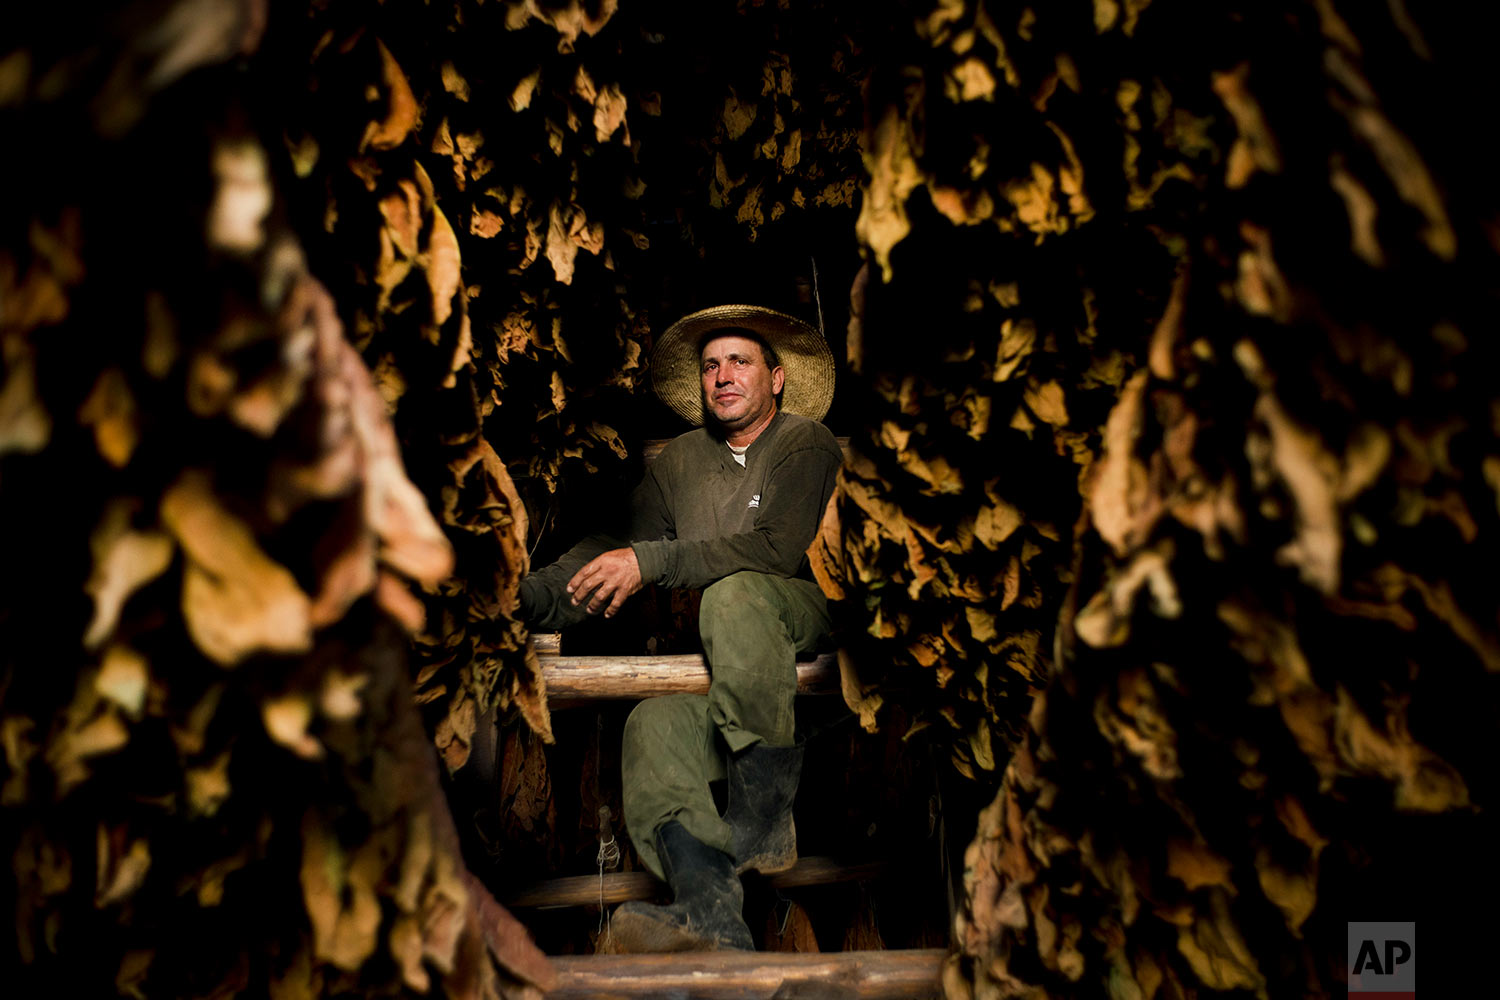 "In this photo published in March, Roberto Armas Valdes poses with dry tobacco leaves in a warehouse at the Martinez tobacco farm in Cuba's western province of Pinar del Rio, Cuba, Feb. 27, 2018. Roberto assumed the running of the family farm when his father-in-law passed away 5 years ago. ""It is a very hard and complicated job to manage a farm, but this year has been very good for tobacco,"" he said. (AP Photo/Ramon Espinosa)"